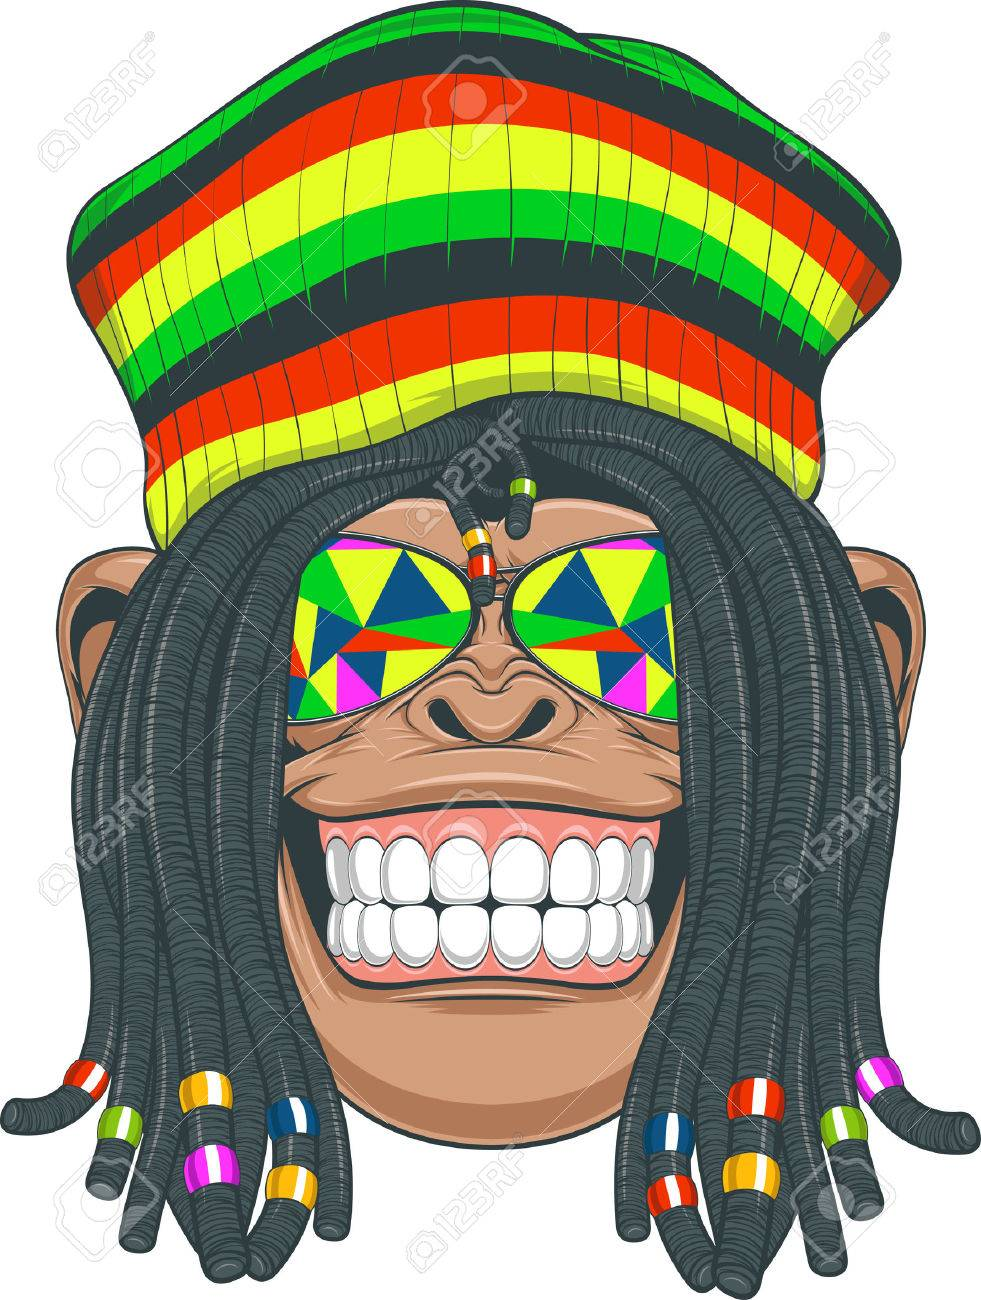 03ecbf41070 Illustration chimpanzee with dreadlocks and cap stock vector jpg 981x1300  Cartoon characters with dreads and hat